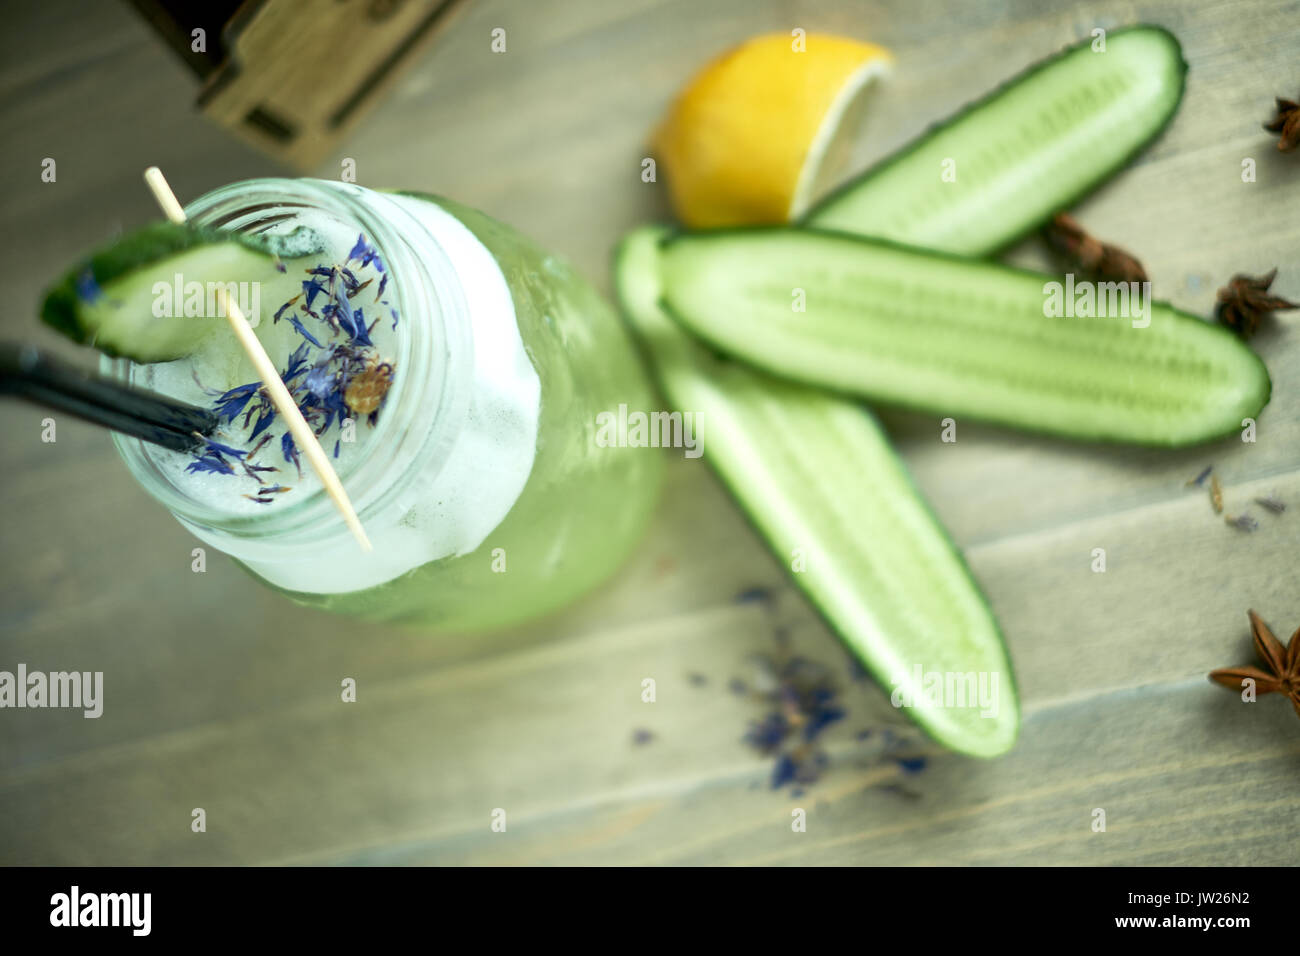 Homemade cucumber and mint lemonade in a glass on a blue wooden background. jpg Stock Photo